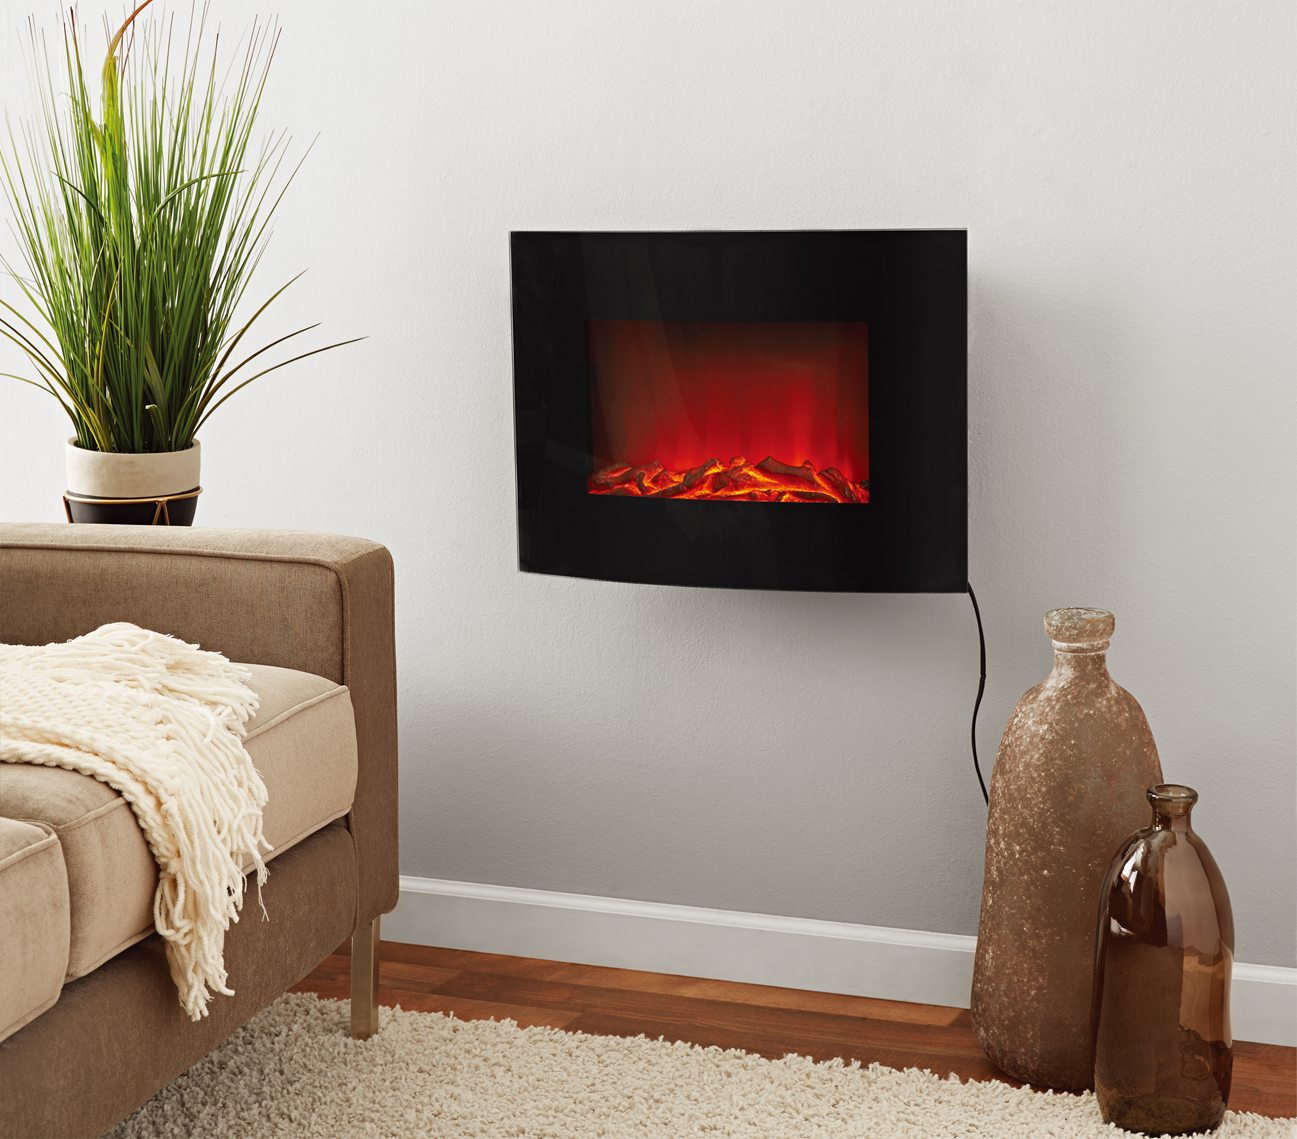 Wall Mount Fireplace Heaters Mainstays Freestanding Or Wall Mounted Fireplace Heater Black